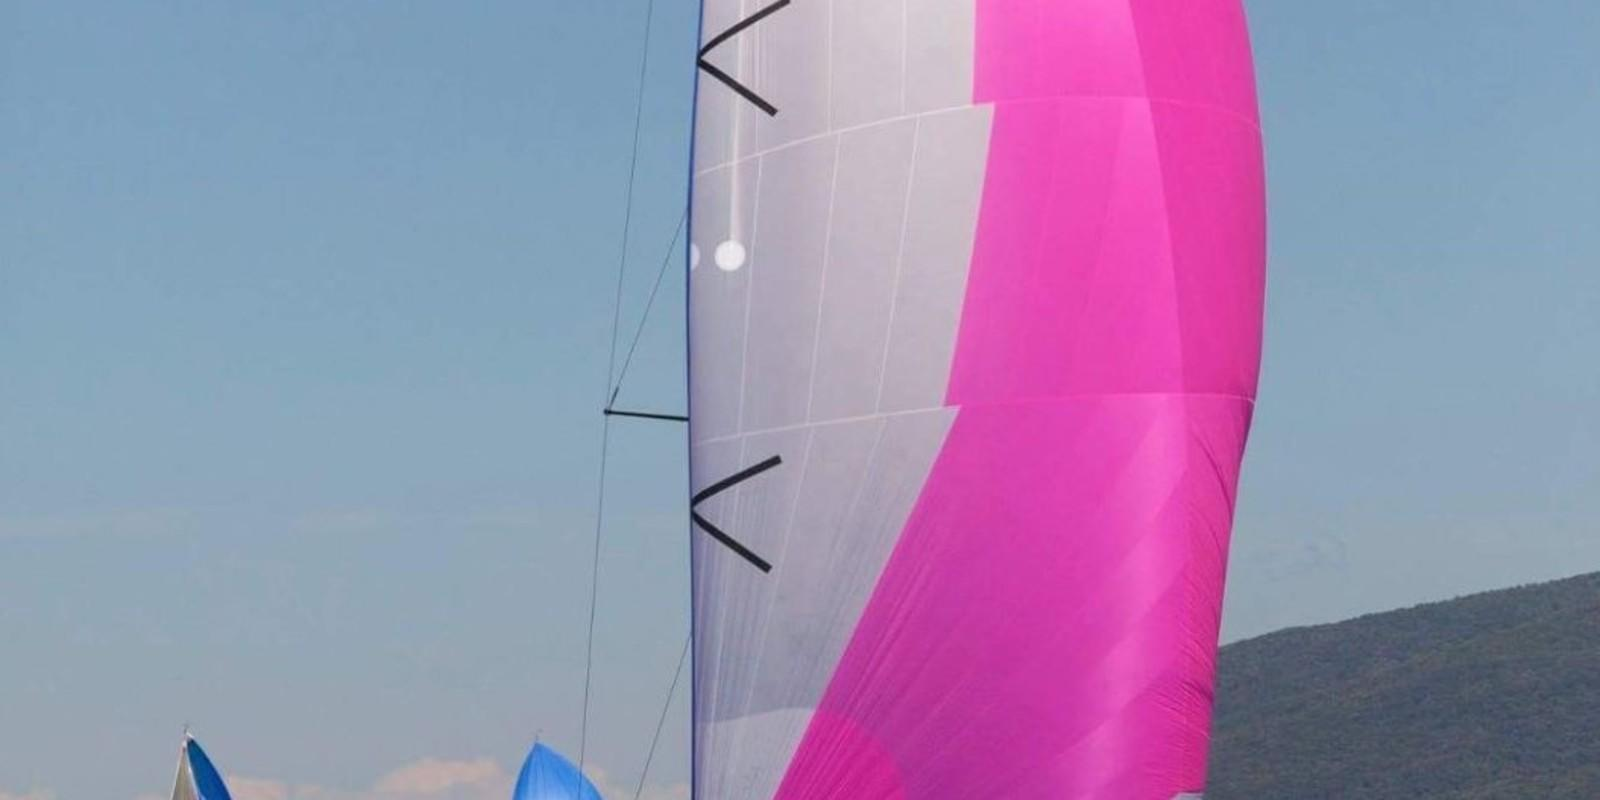 Sailing course, navigation X2 and reduced crew